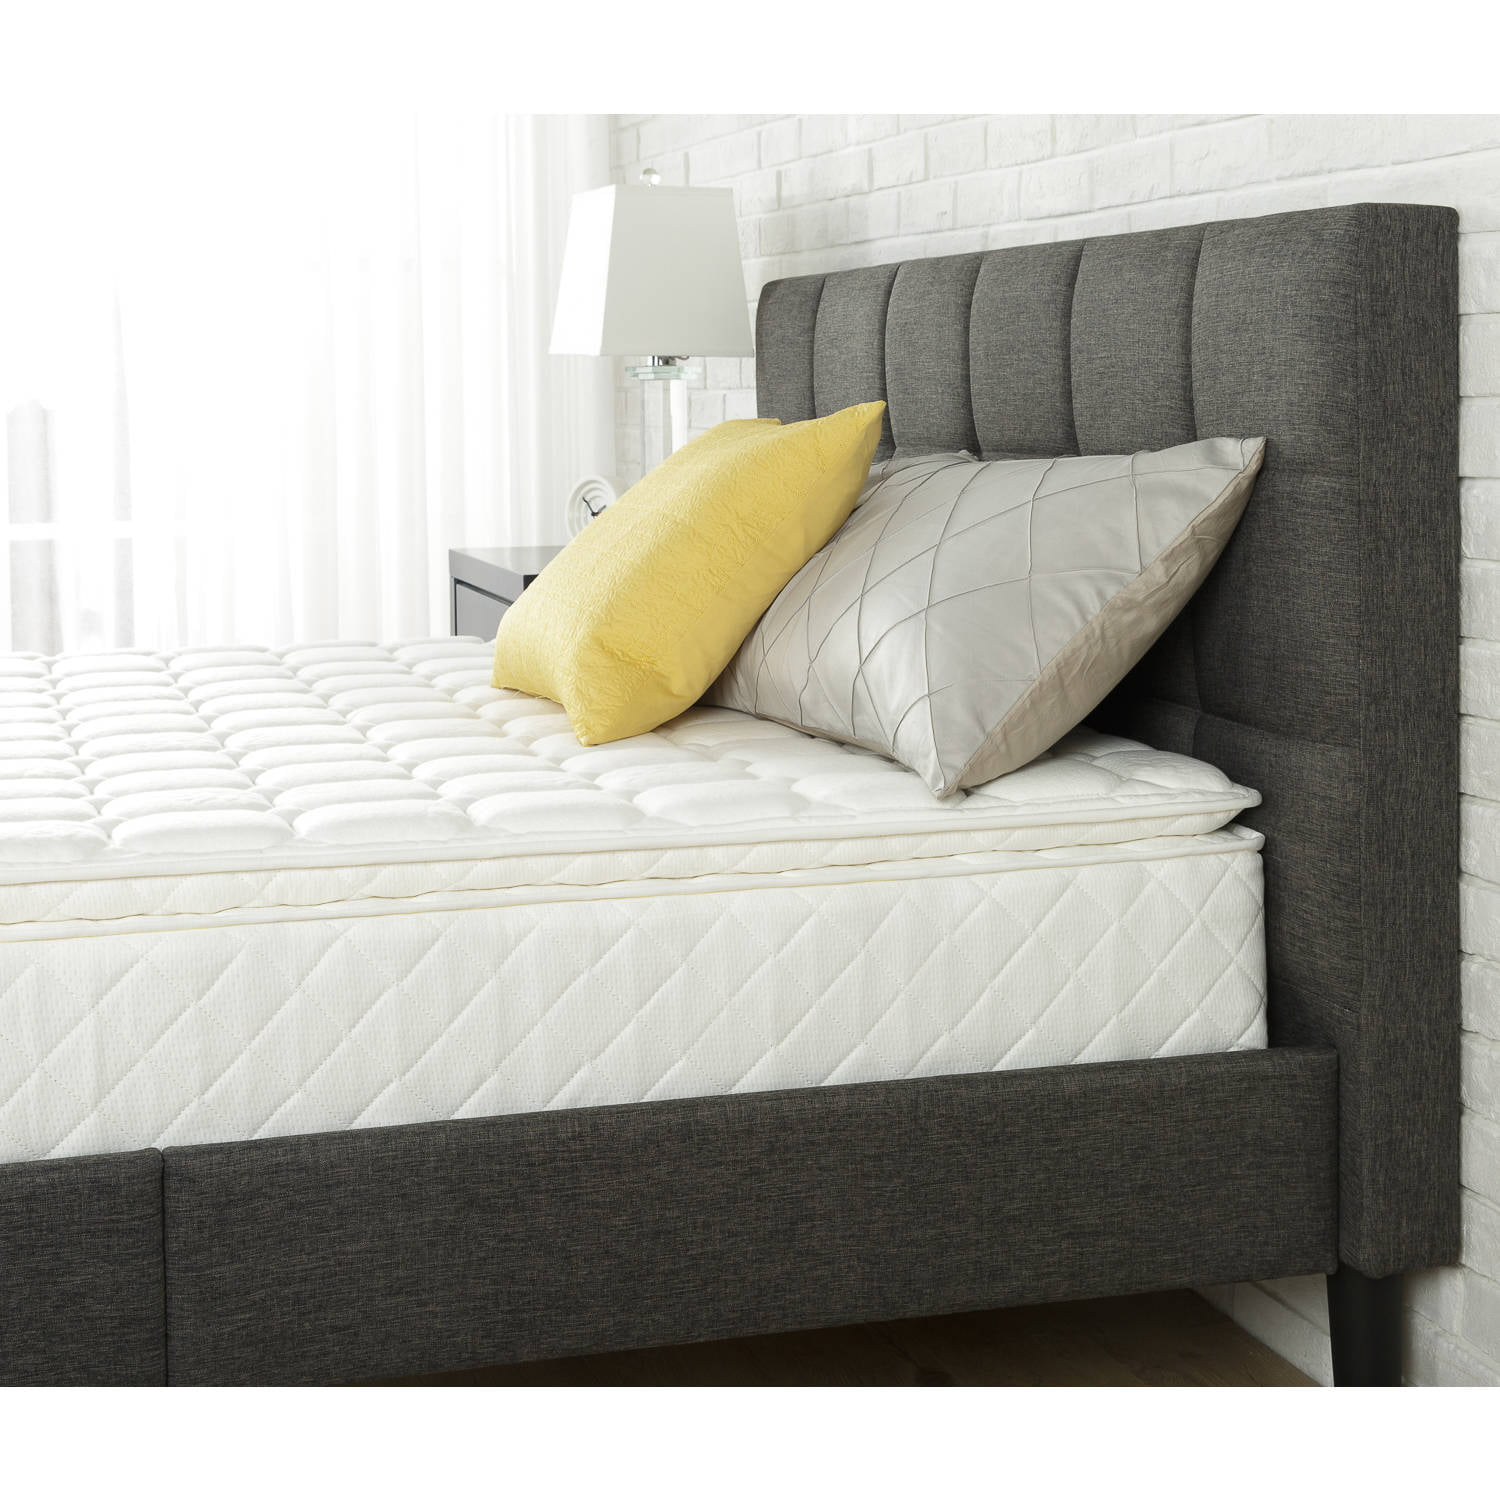 mattresses worldstores ruby everything topper relyon mattress img next c htm pillow from delivery for the day home top